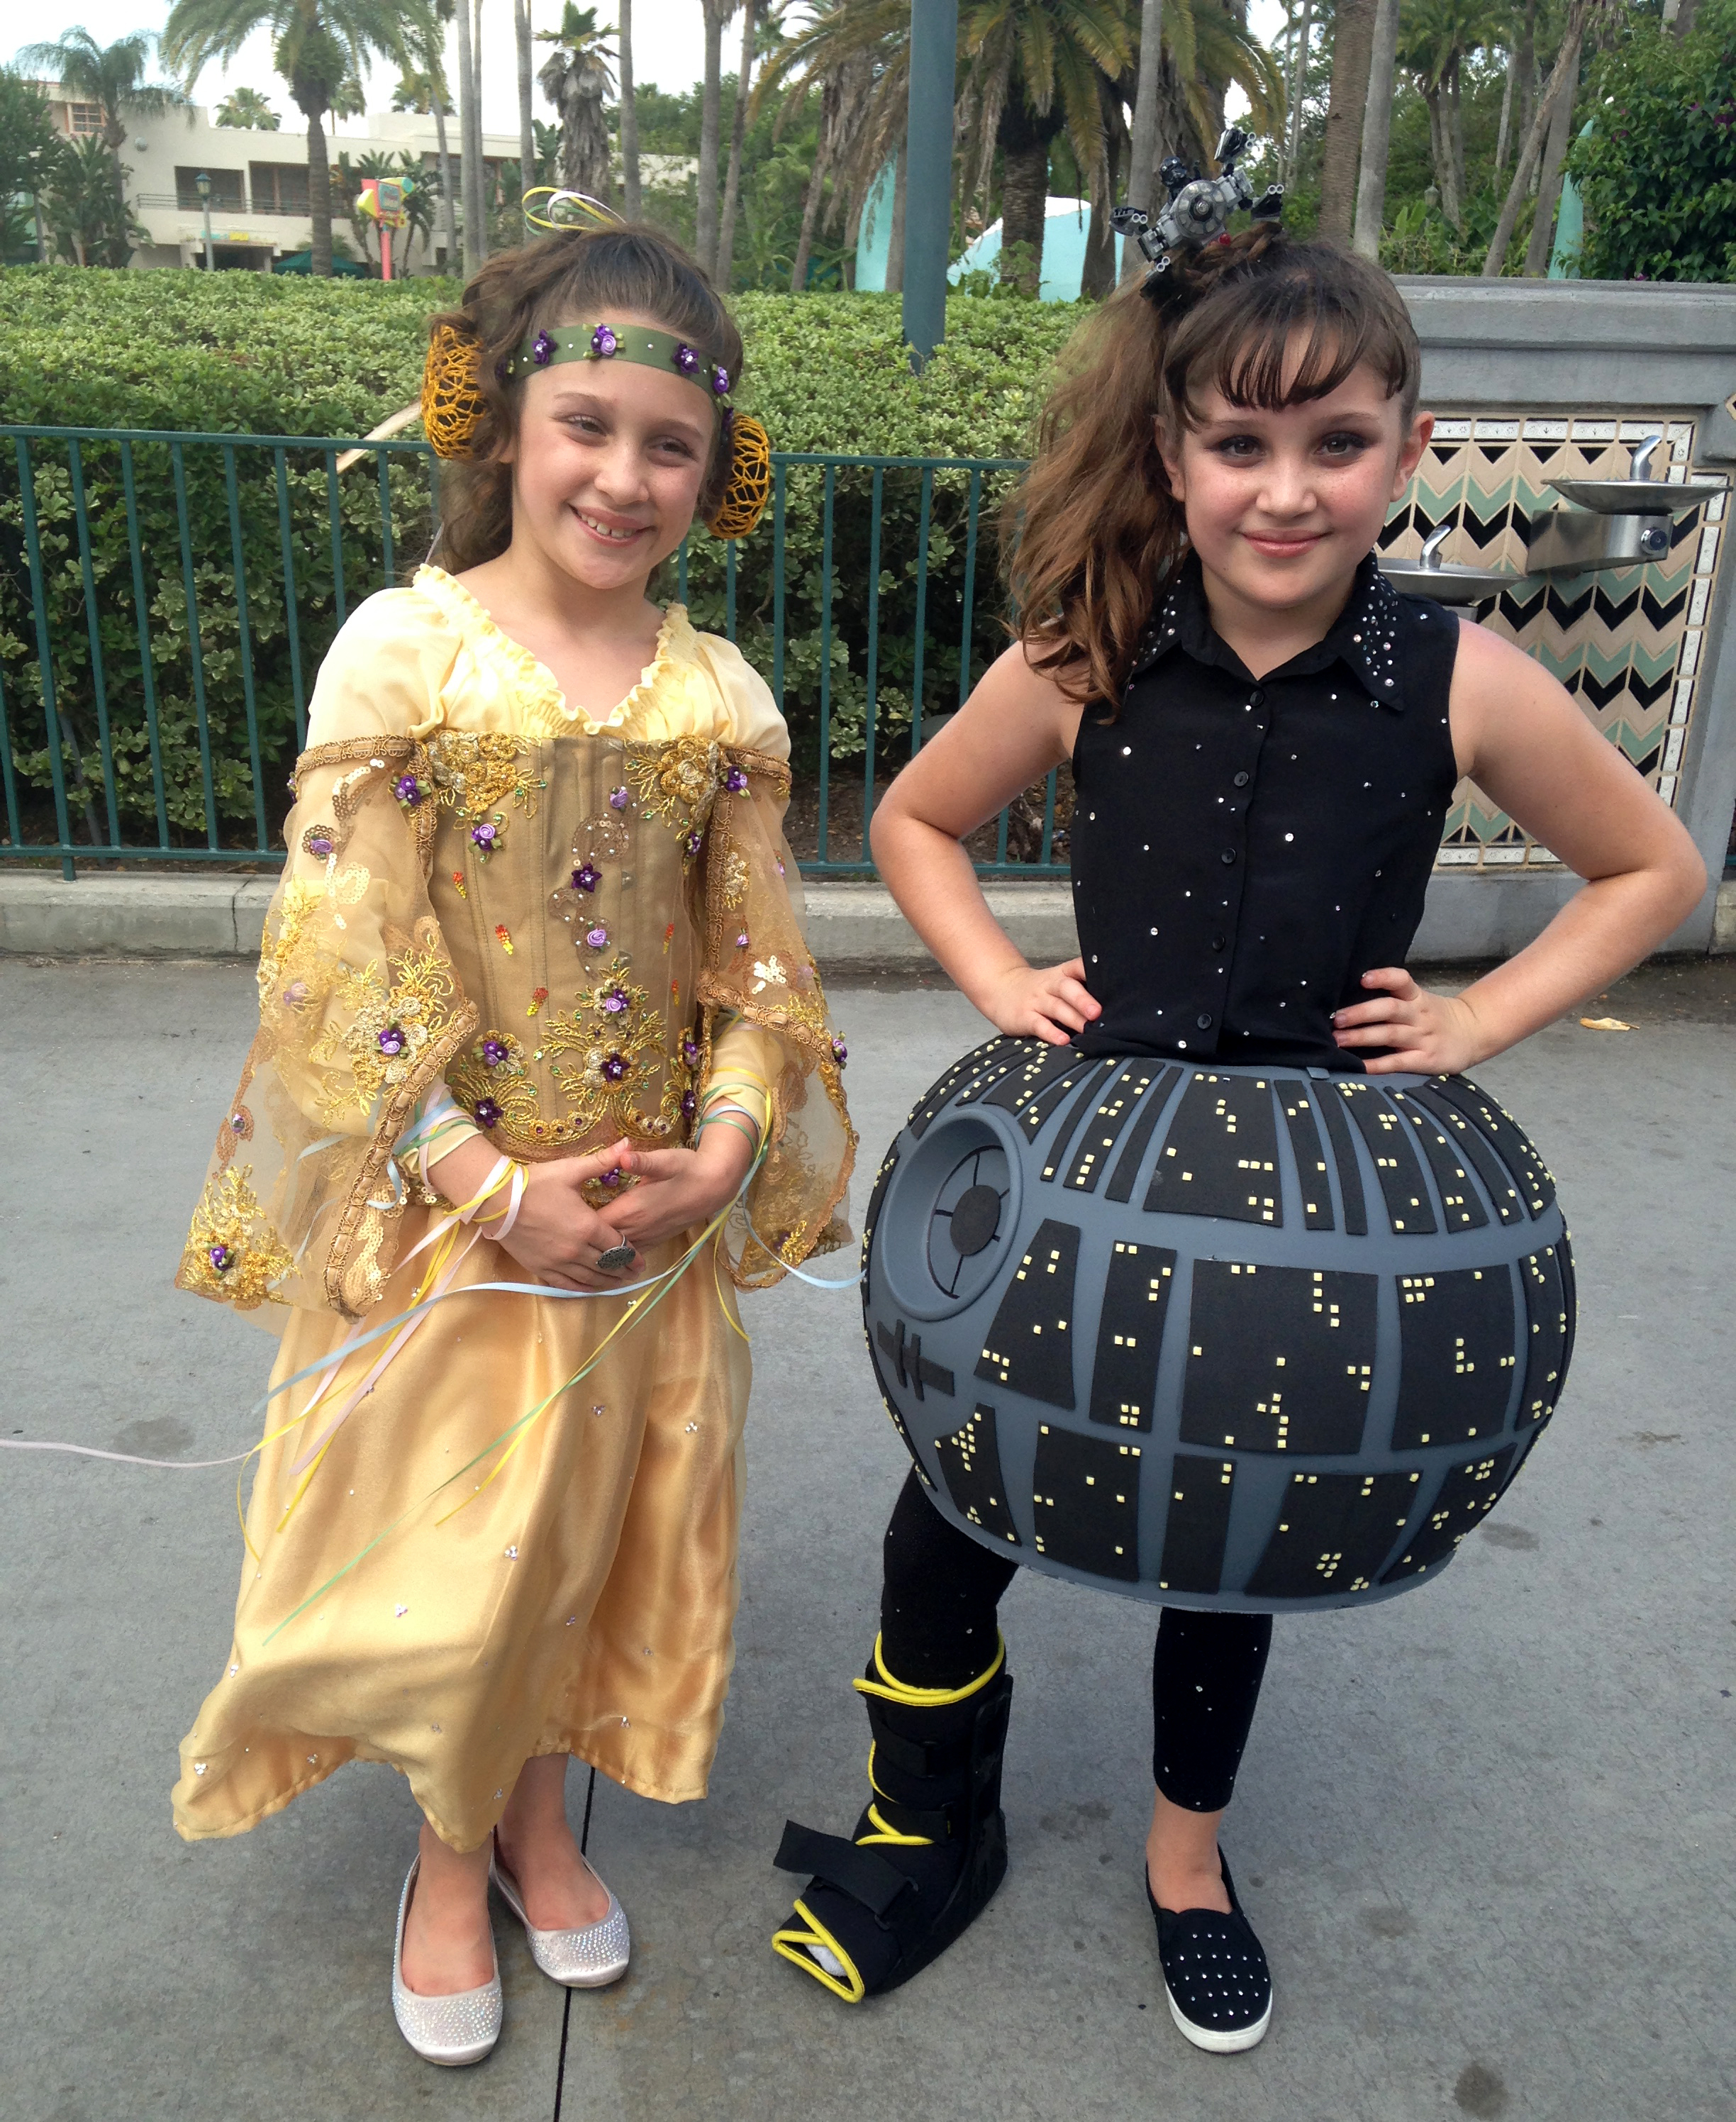 Star Wars costumers at Star Wars Weekends